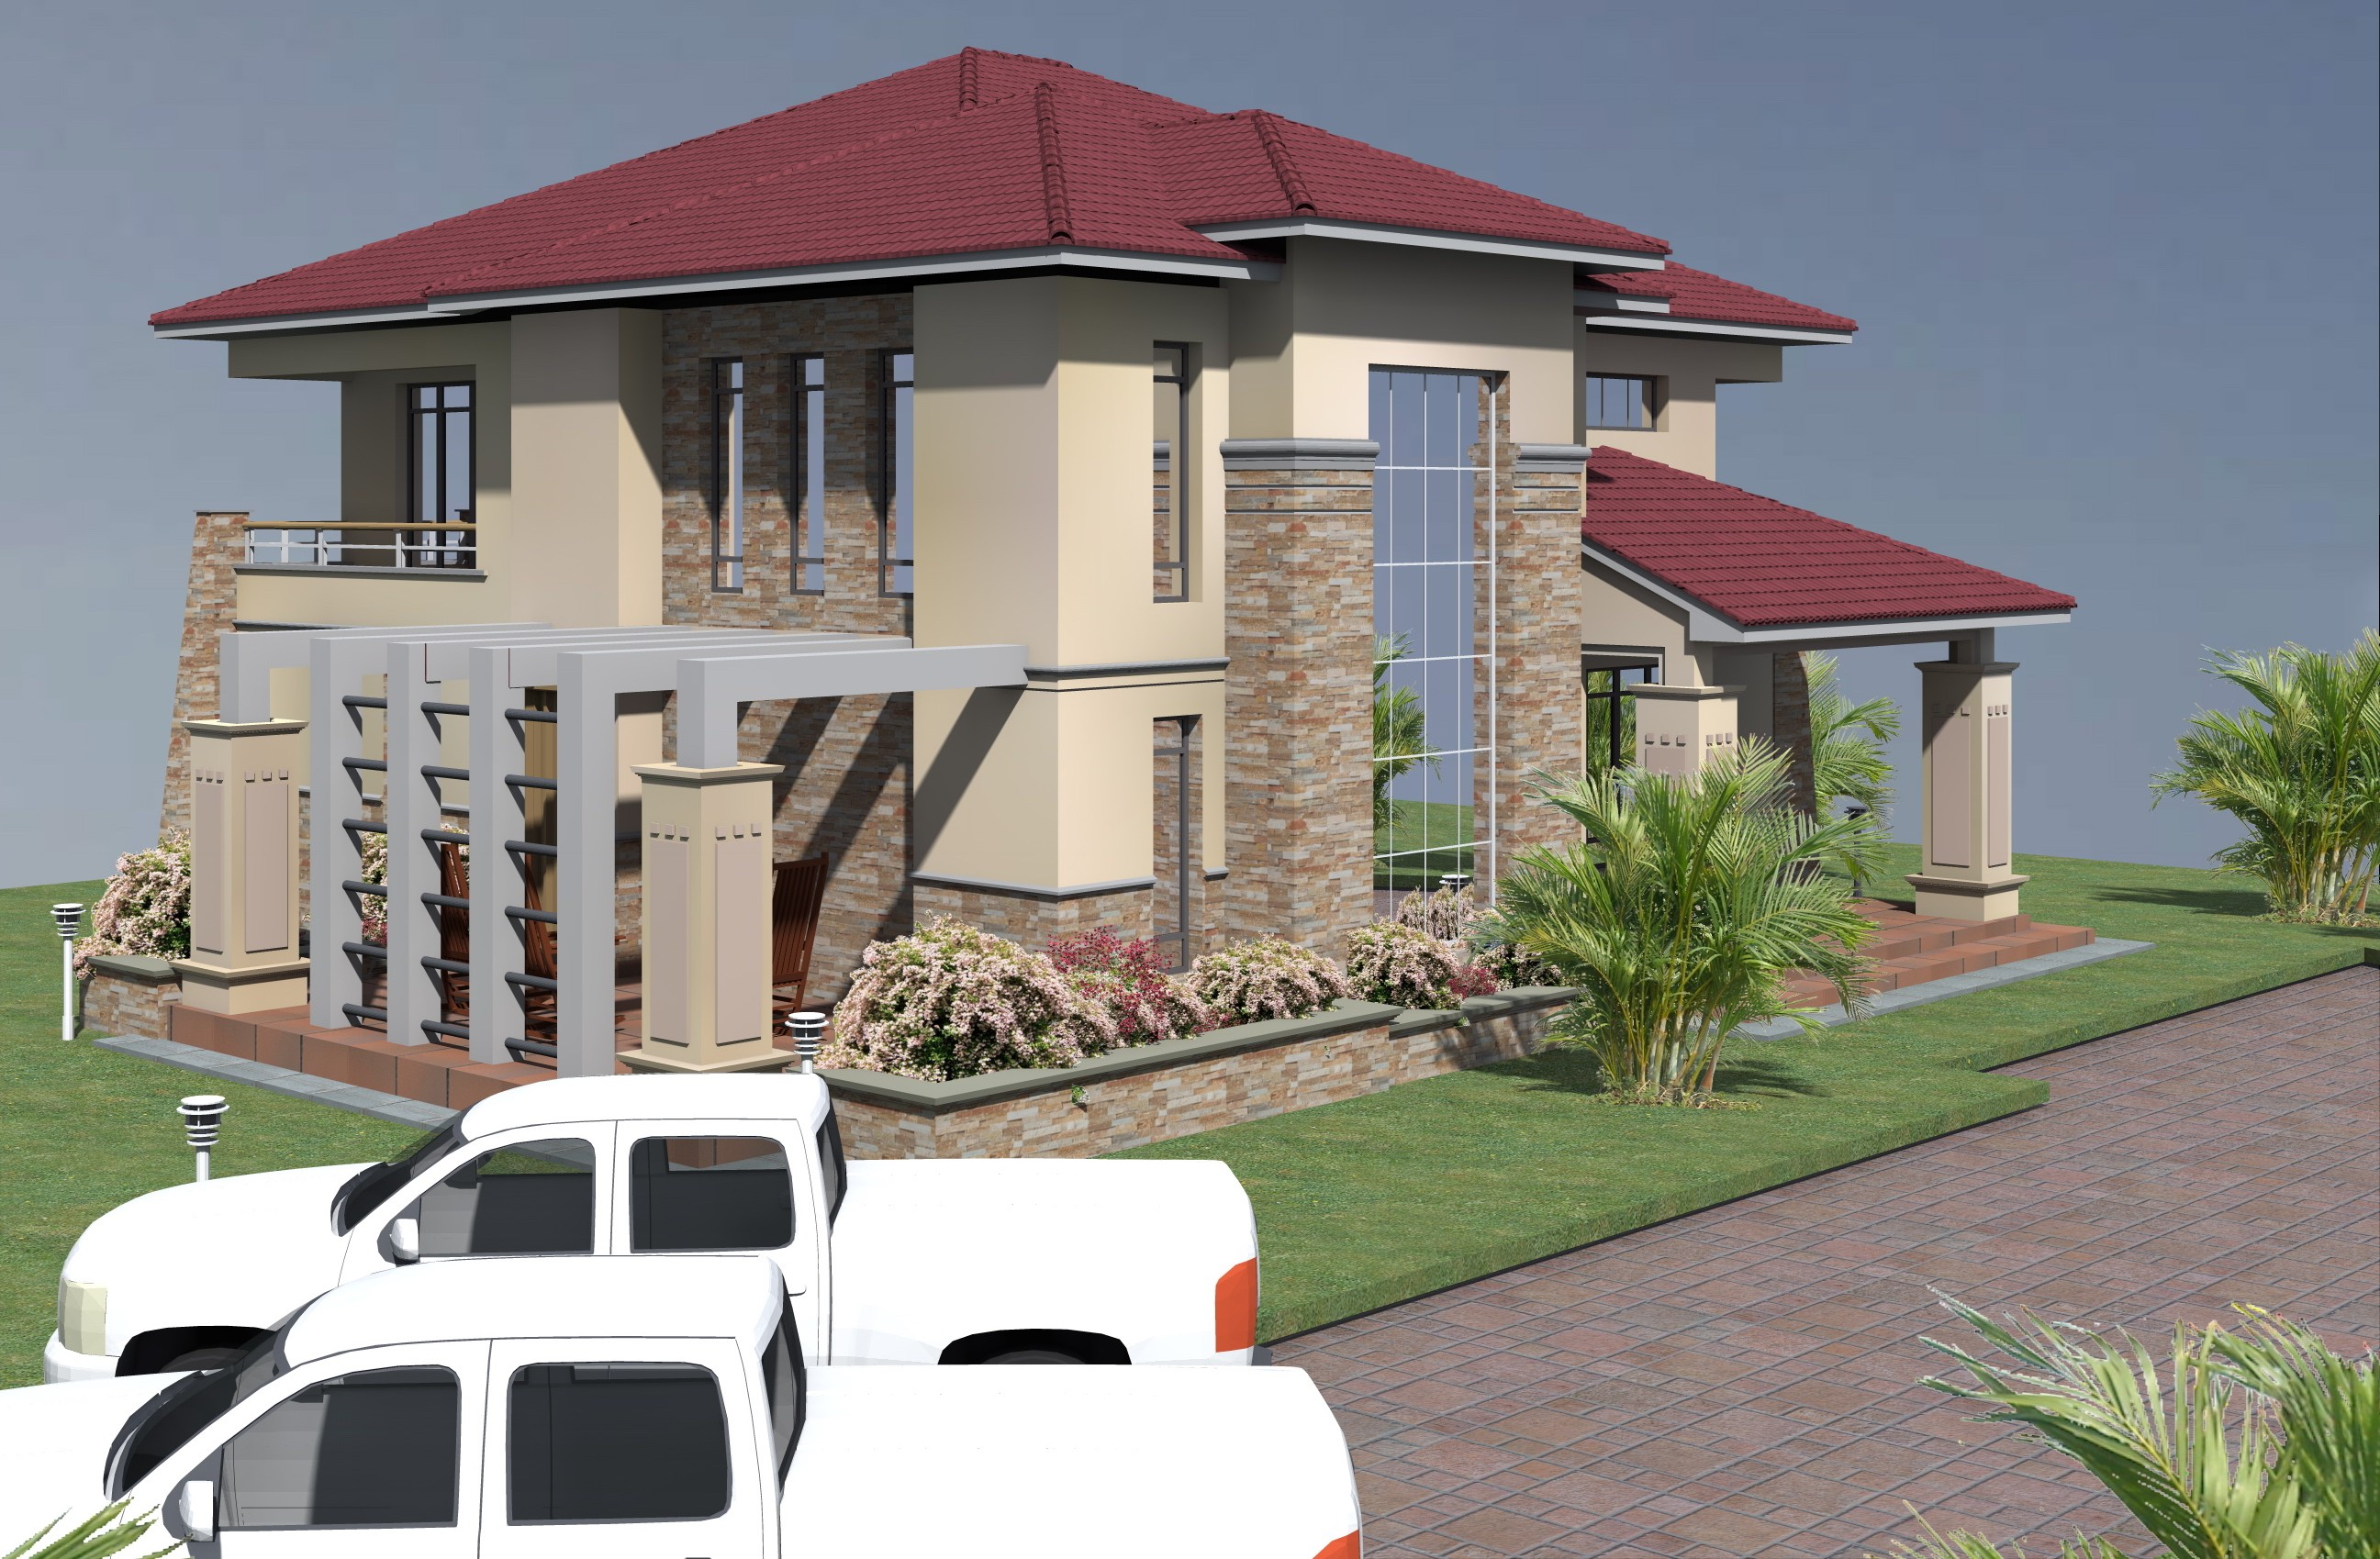 PROPOSED FOUR BEDROOM MAISONETTE